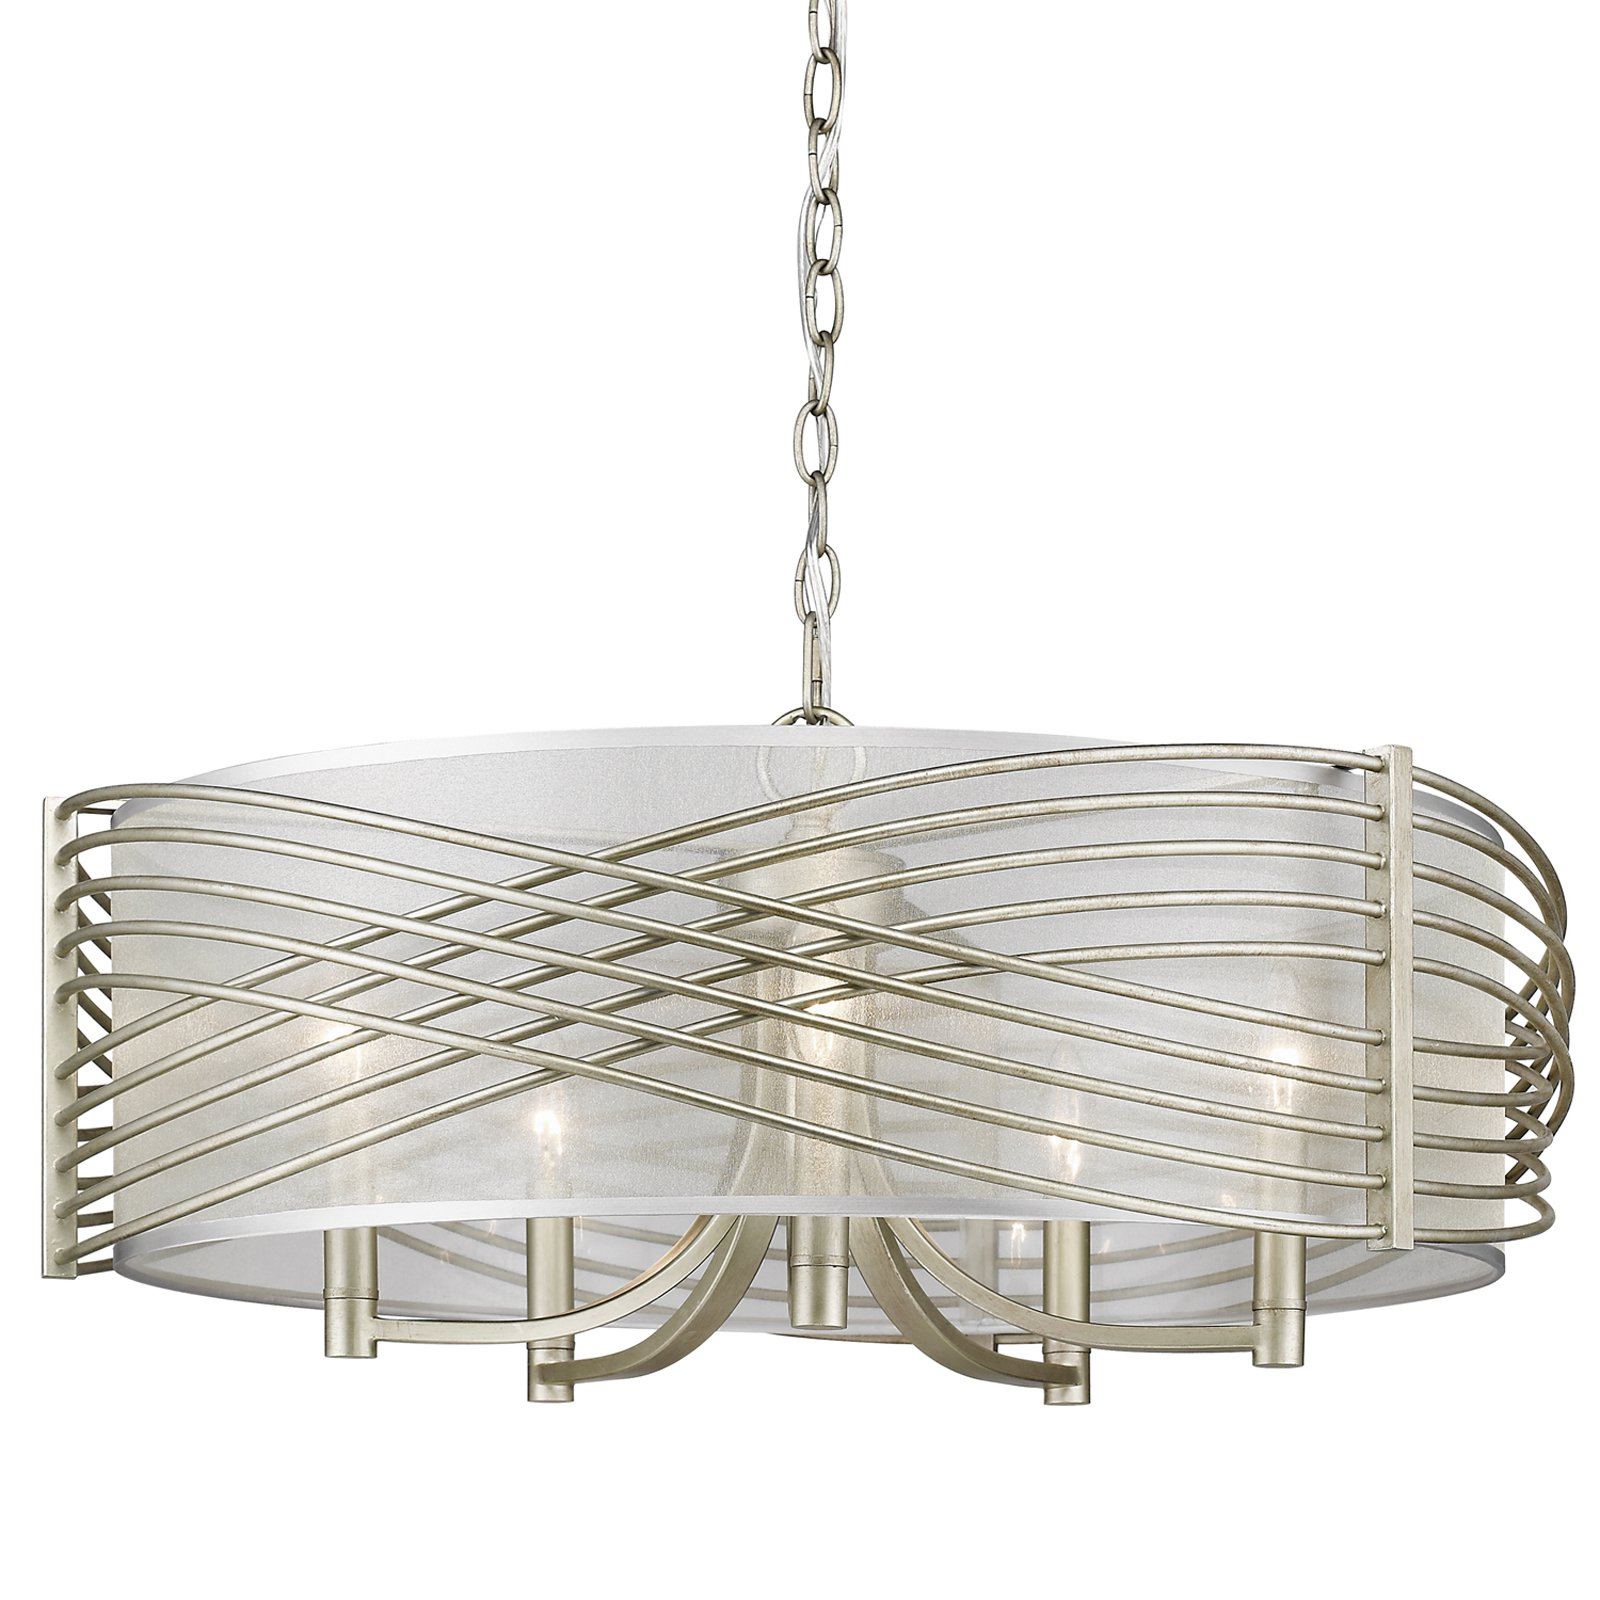 Golden Lighting 5516-5-SHR Zara 5 Light Drum Chandelier with Sheer Fabric Shade